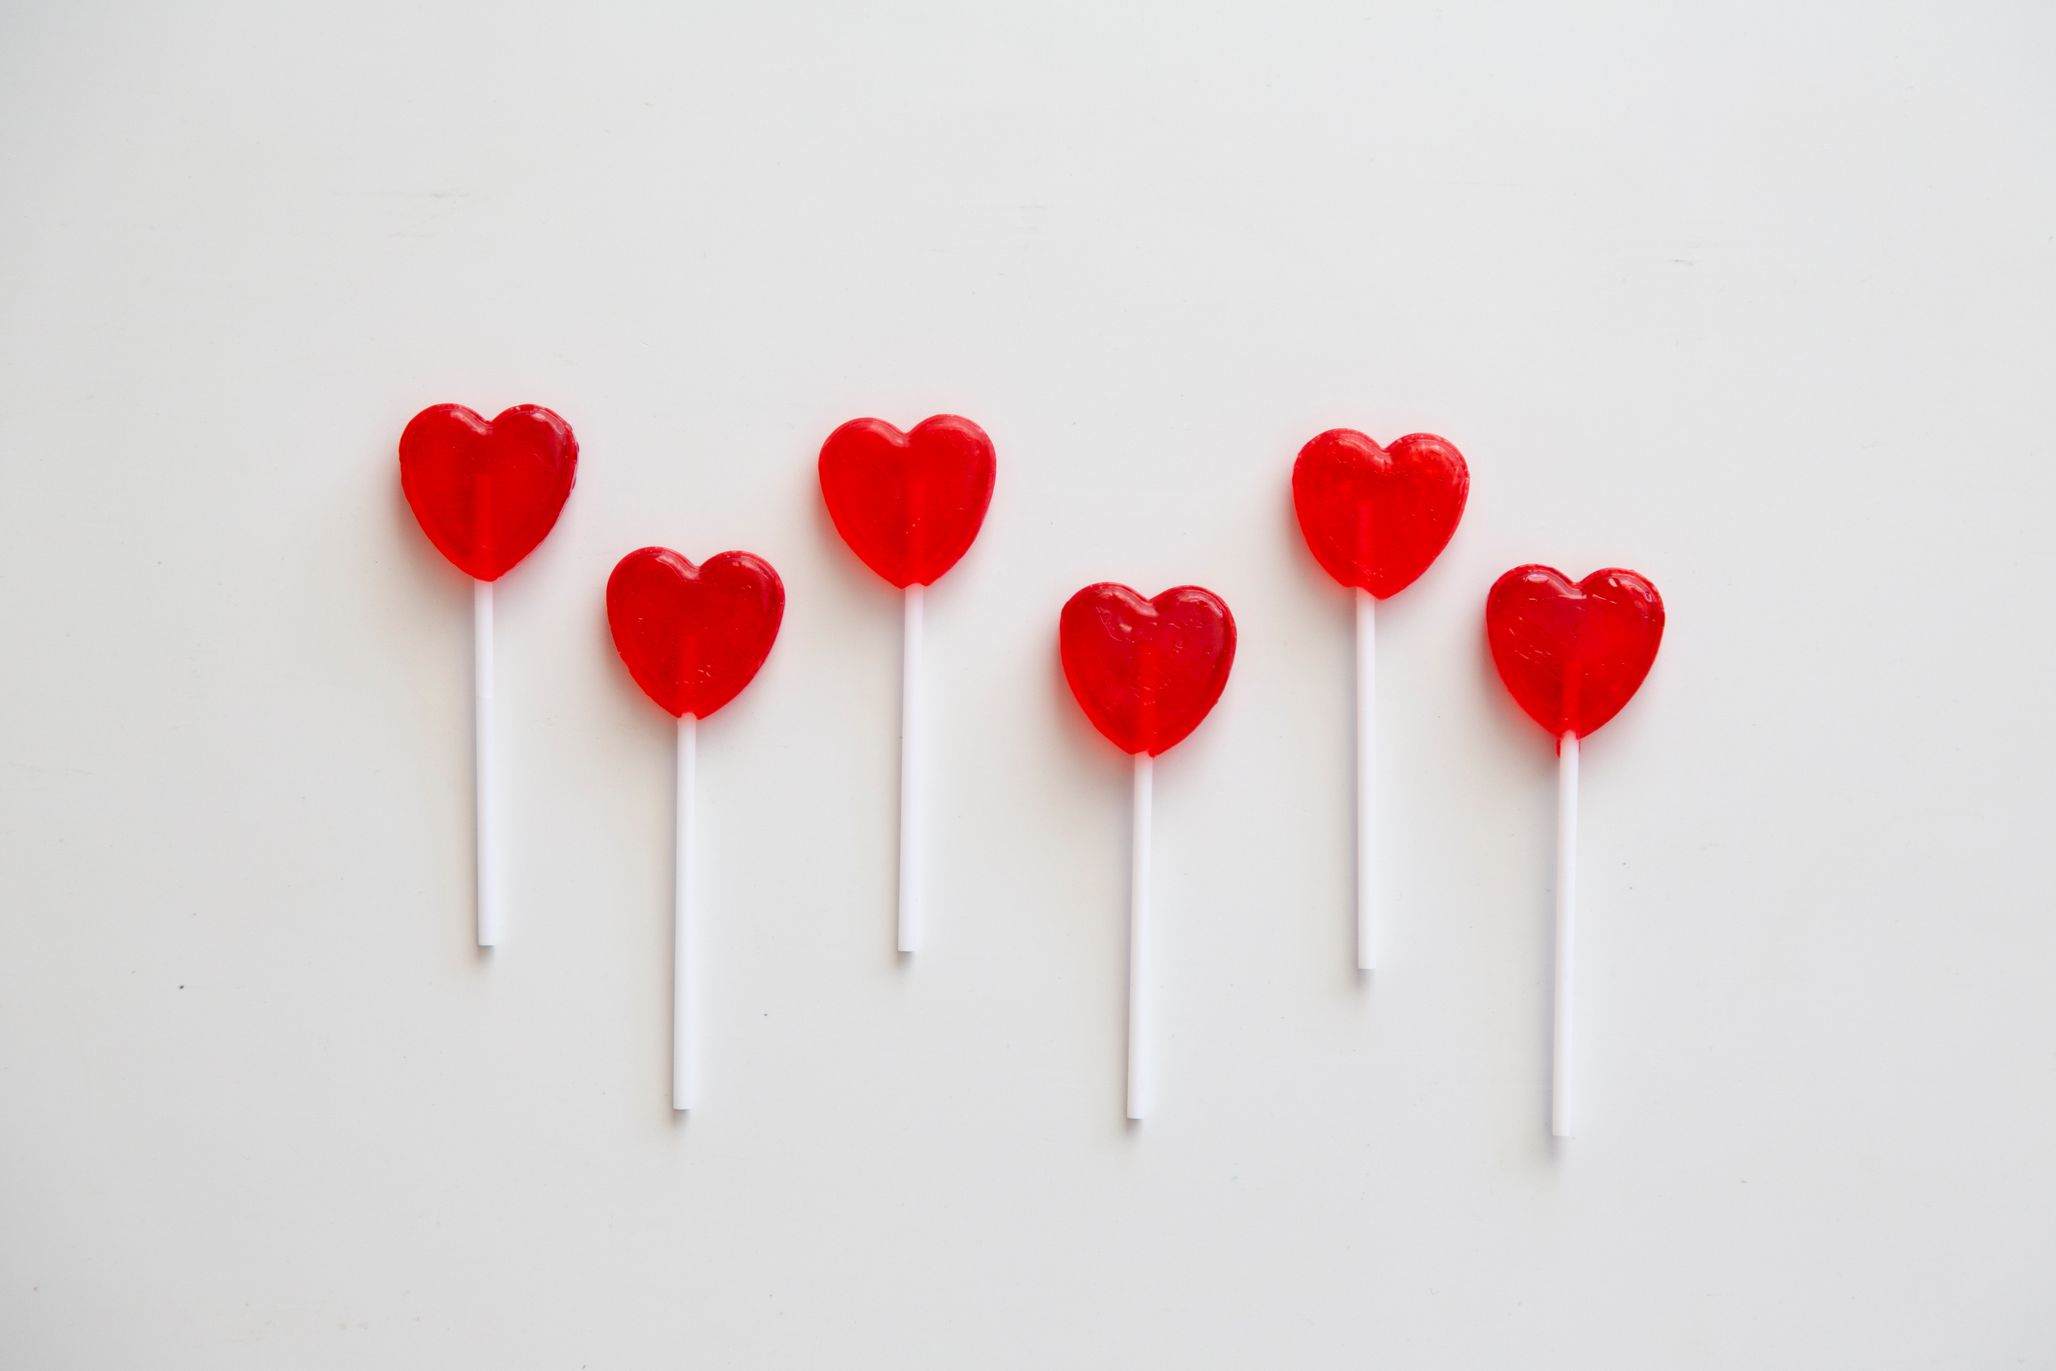 Heart shaped lollipops in a row